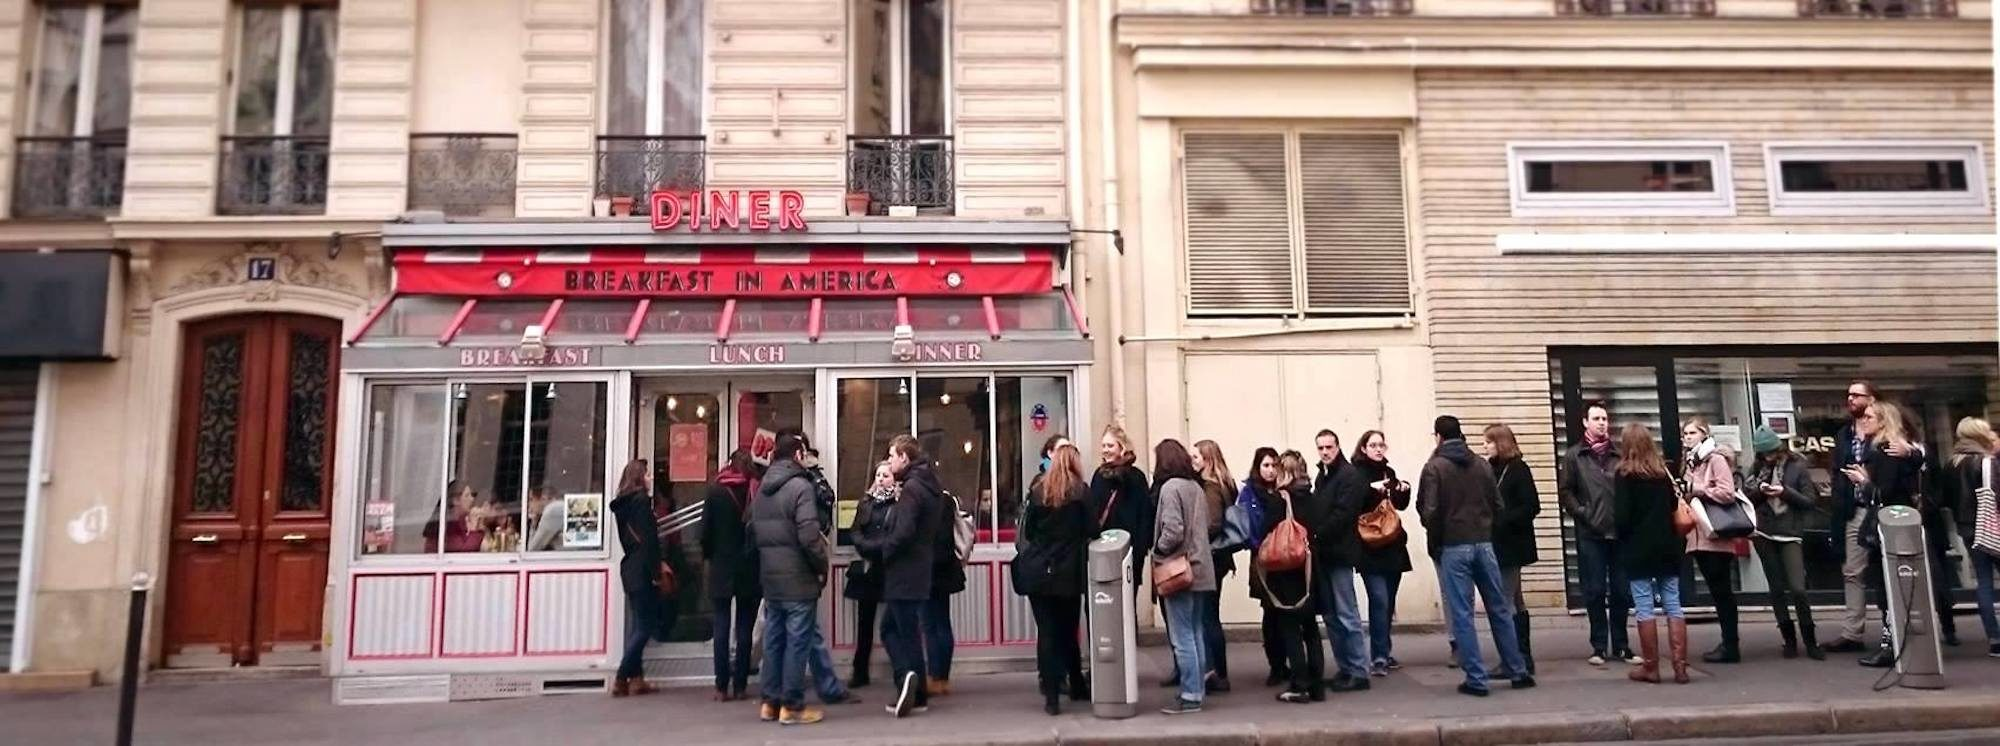 The queue at Breakfast in America diner in Paris on Thanksgiving.